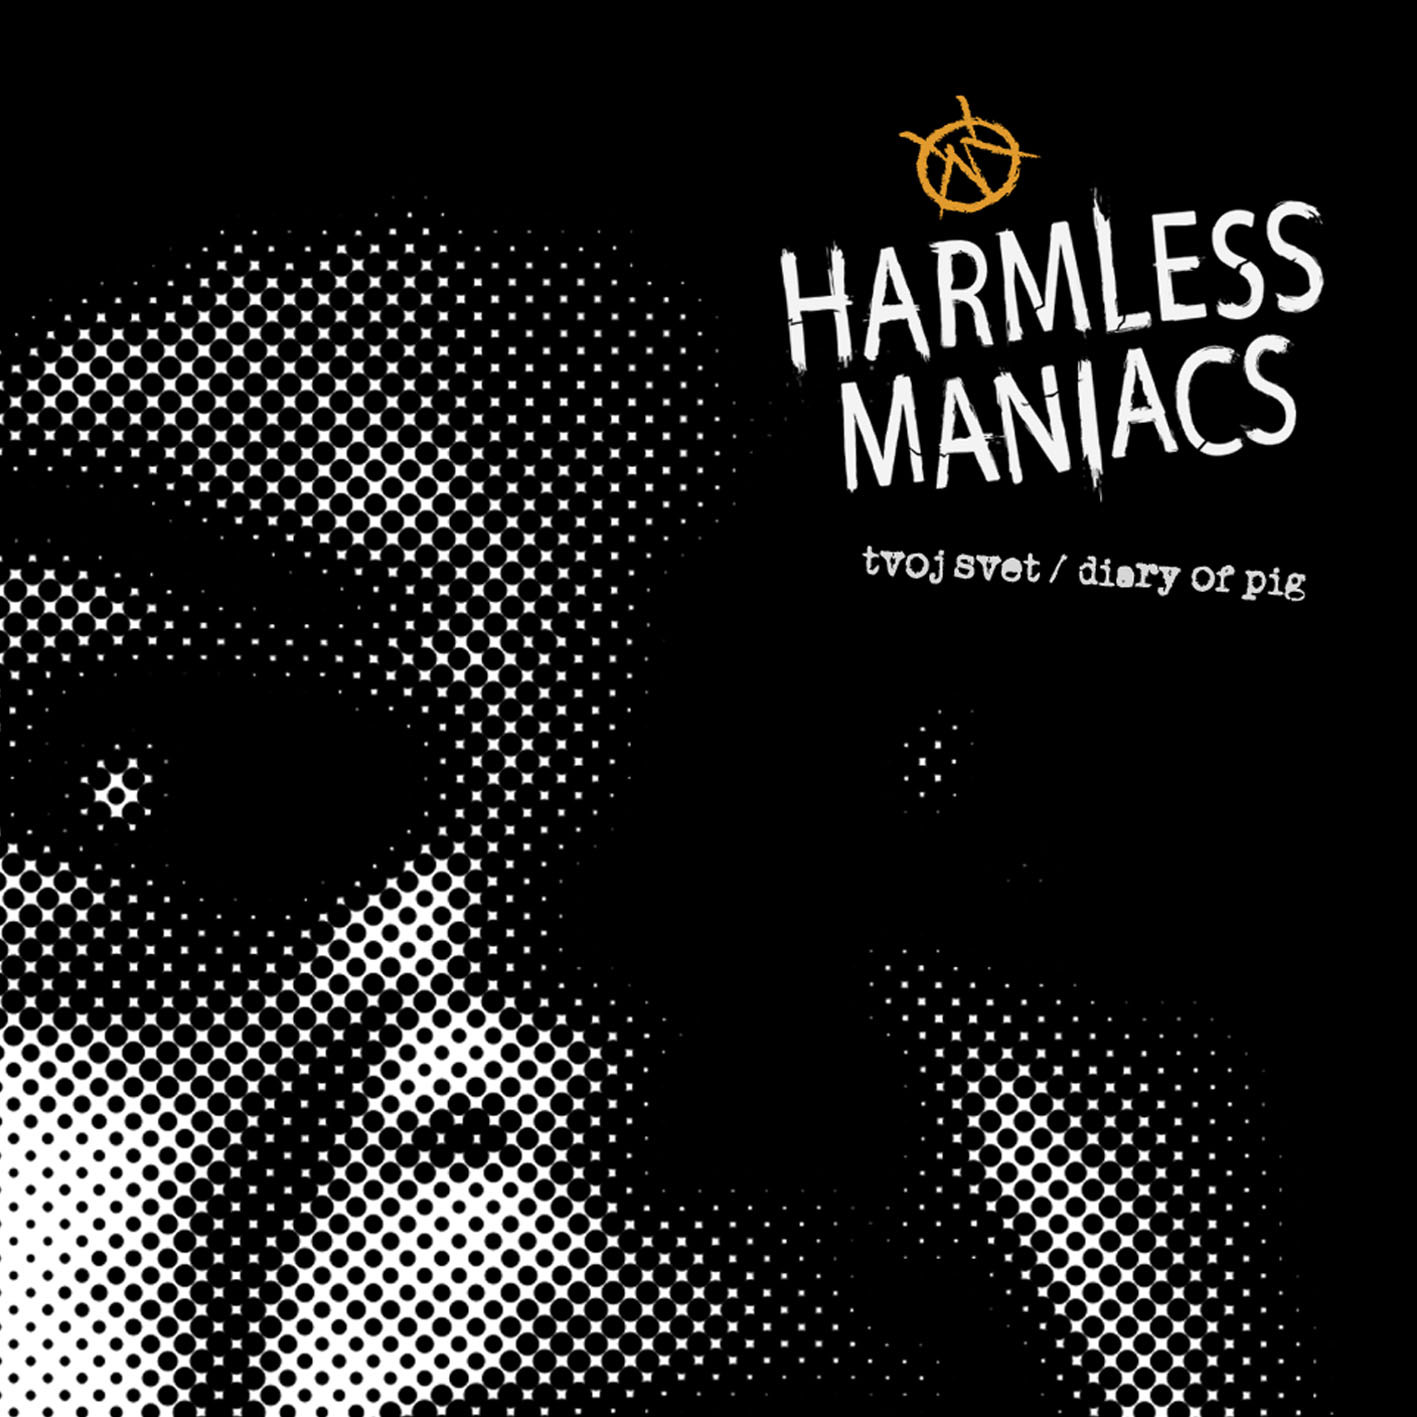 harmless maniacs ep out now pmk035 pmk records. Black Bedroom Furniture Sets. Home Design Ideas